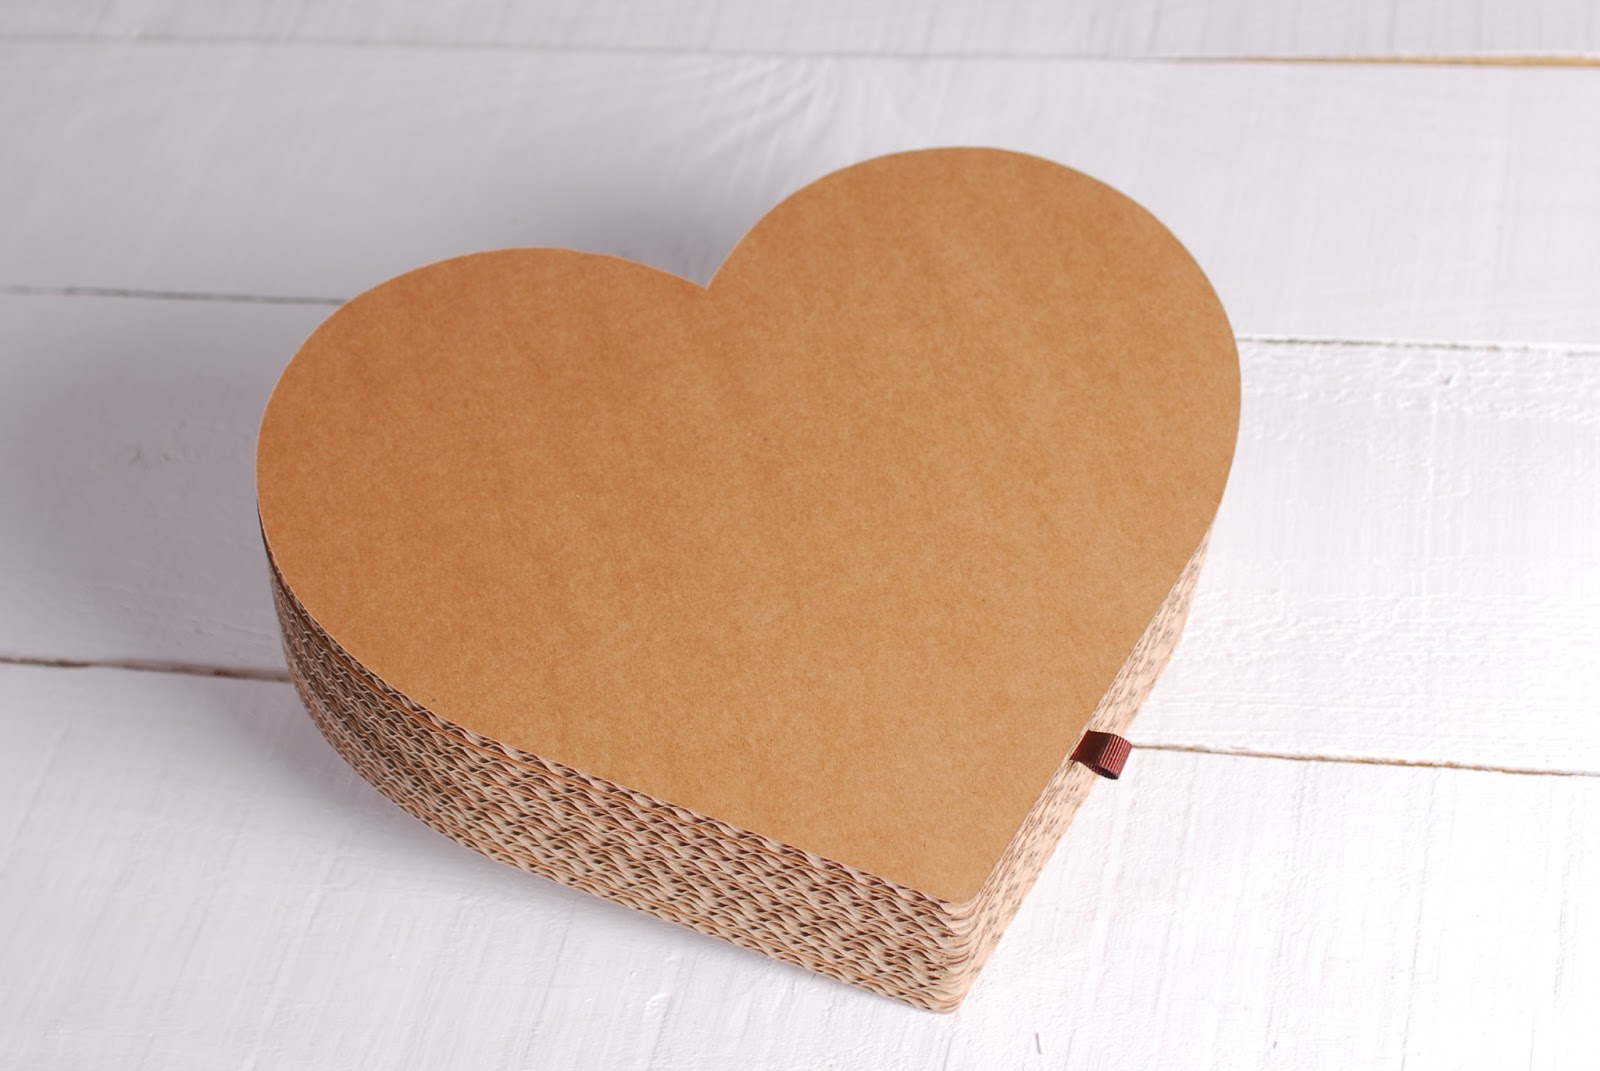 Gift wrapping ideas cardboard heart box homemade craft